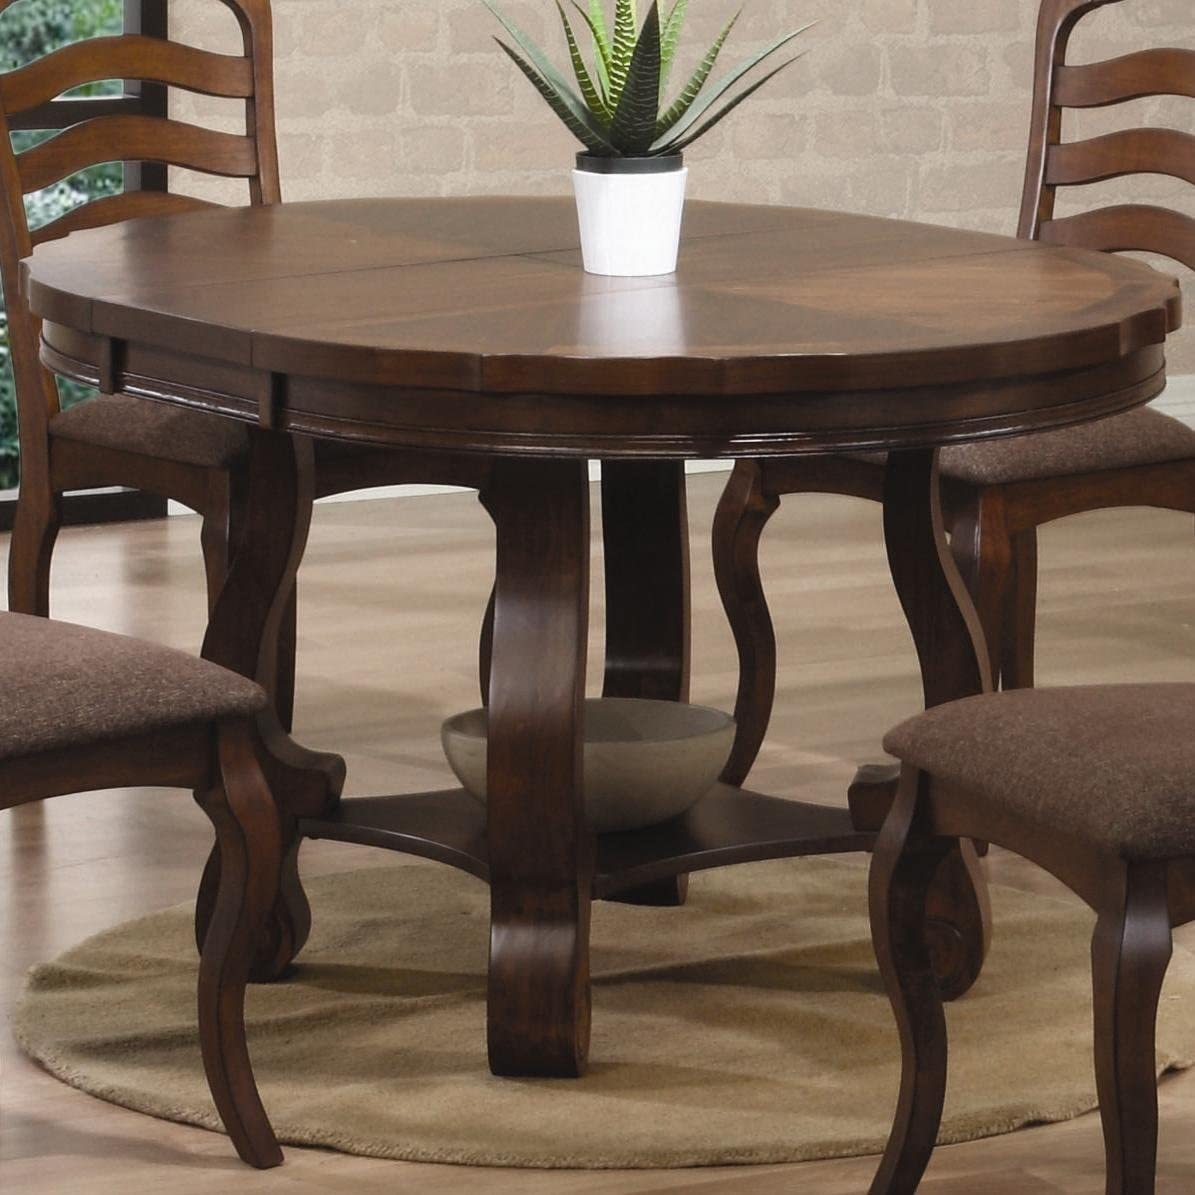 Round Dining Table With Butterfly Leaf 1